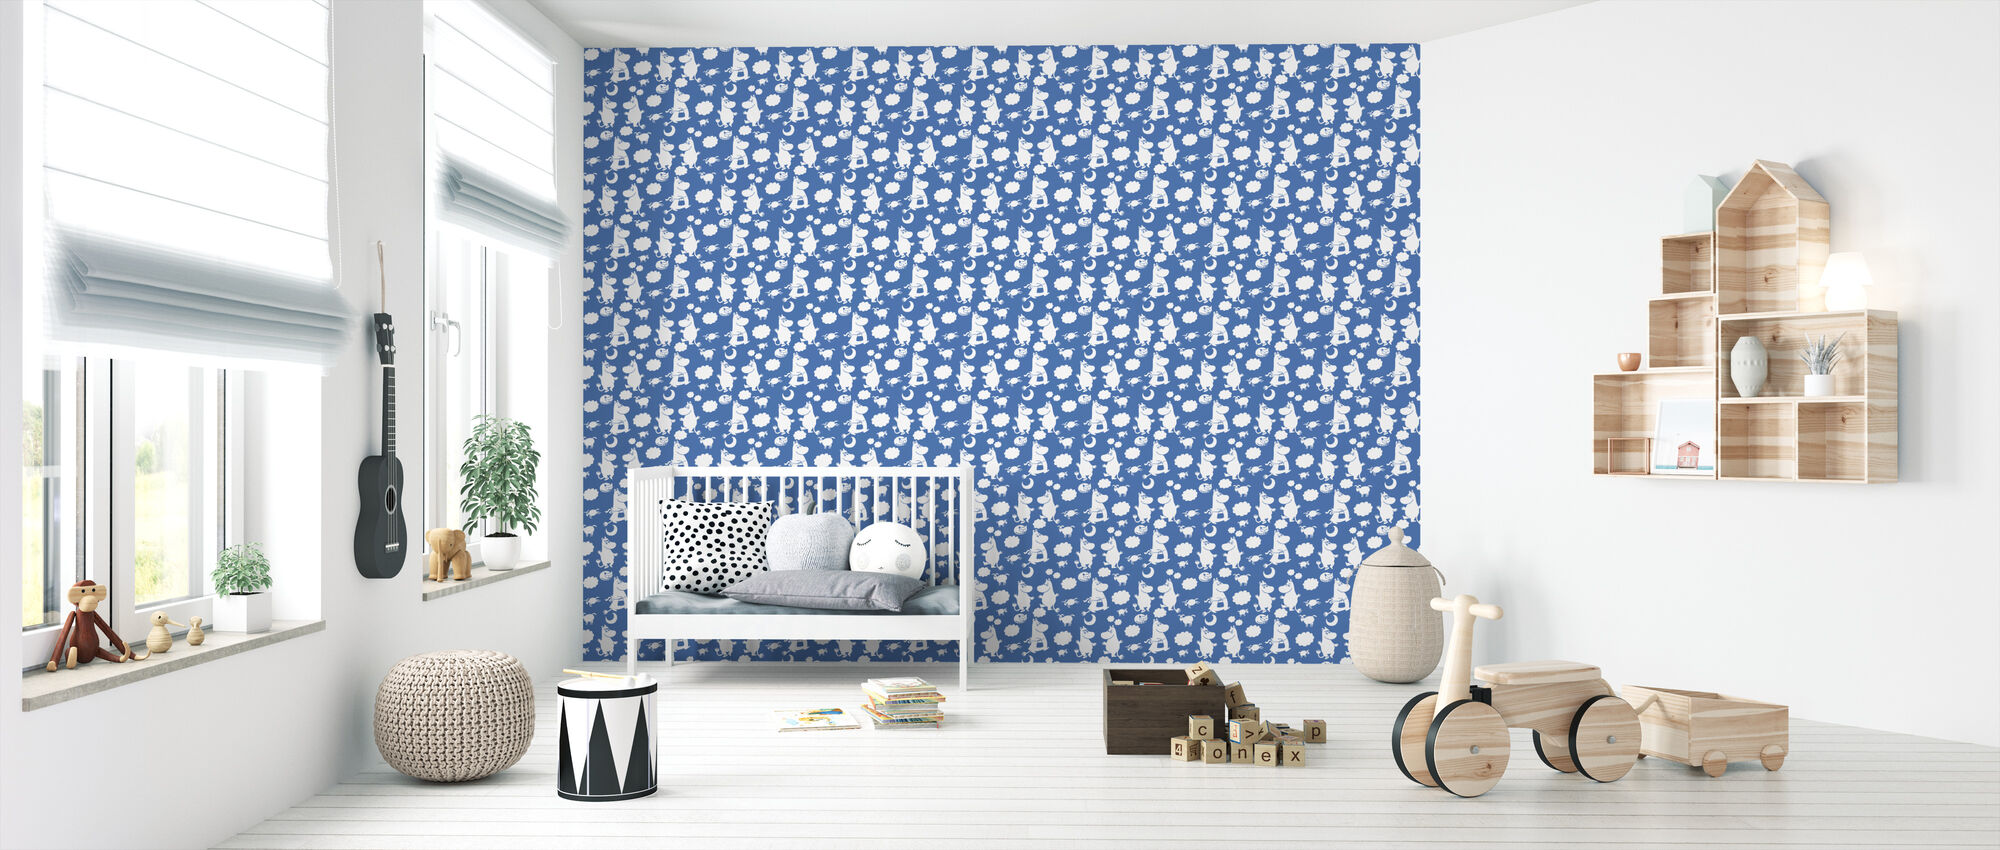 Moomin Retro Pattern - Blue - Wallpaper - Nursery